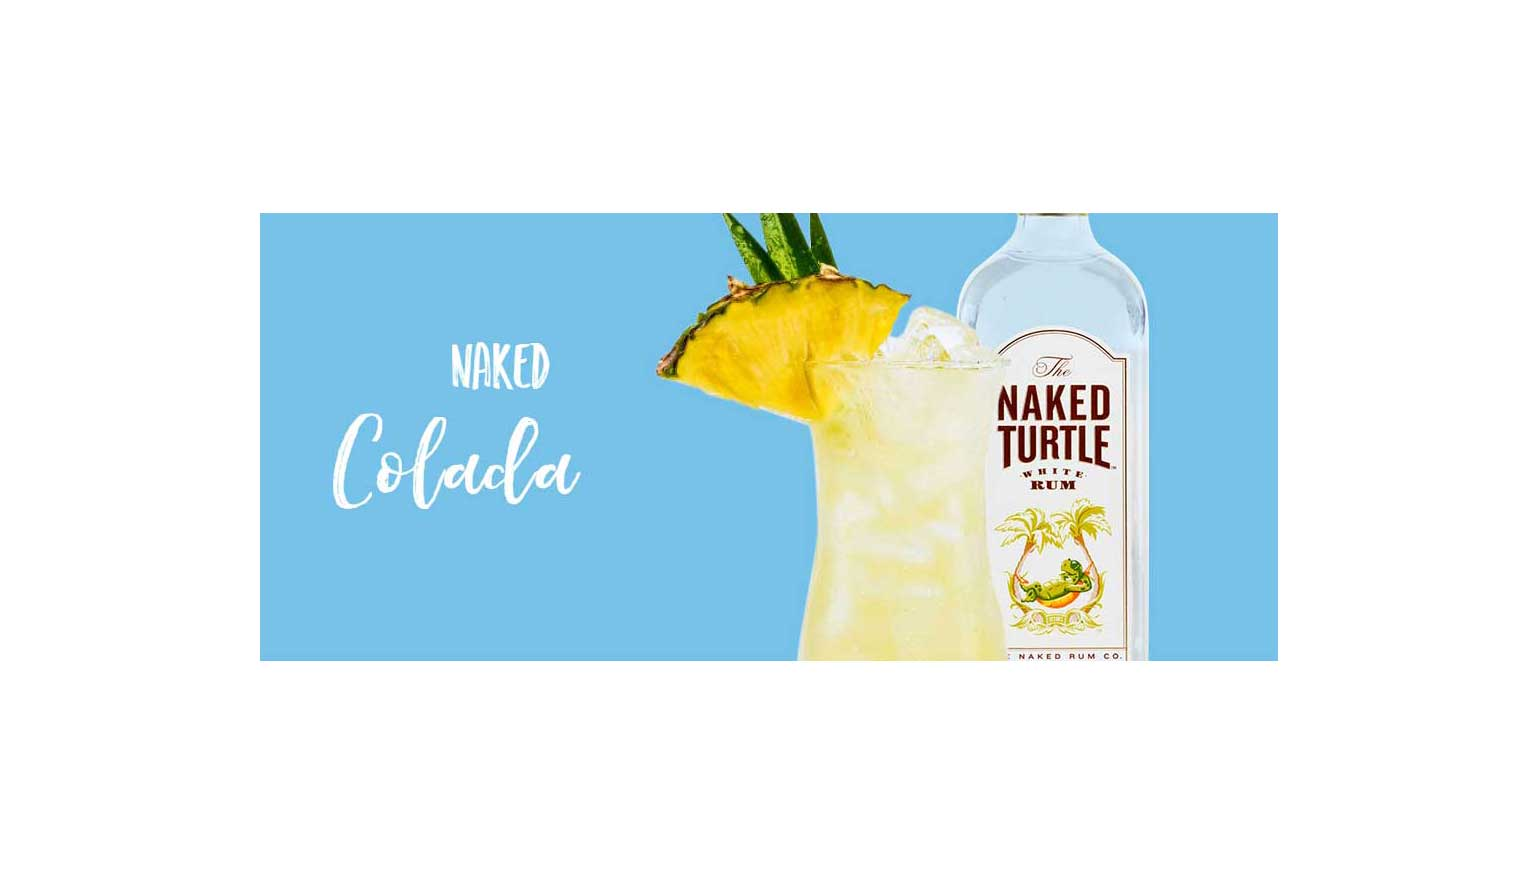 For a more de-light-ful tasting Piña Colada, swap out coconut milk for coconut water. This tropical treat is best enjoyed Naked. Photo Credit: The Naked Turtle White Rum